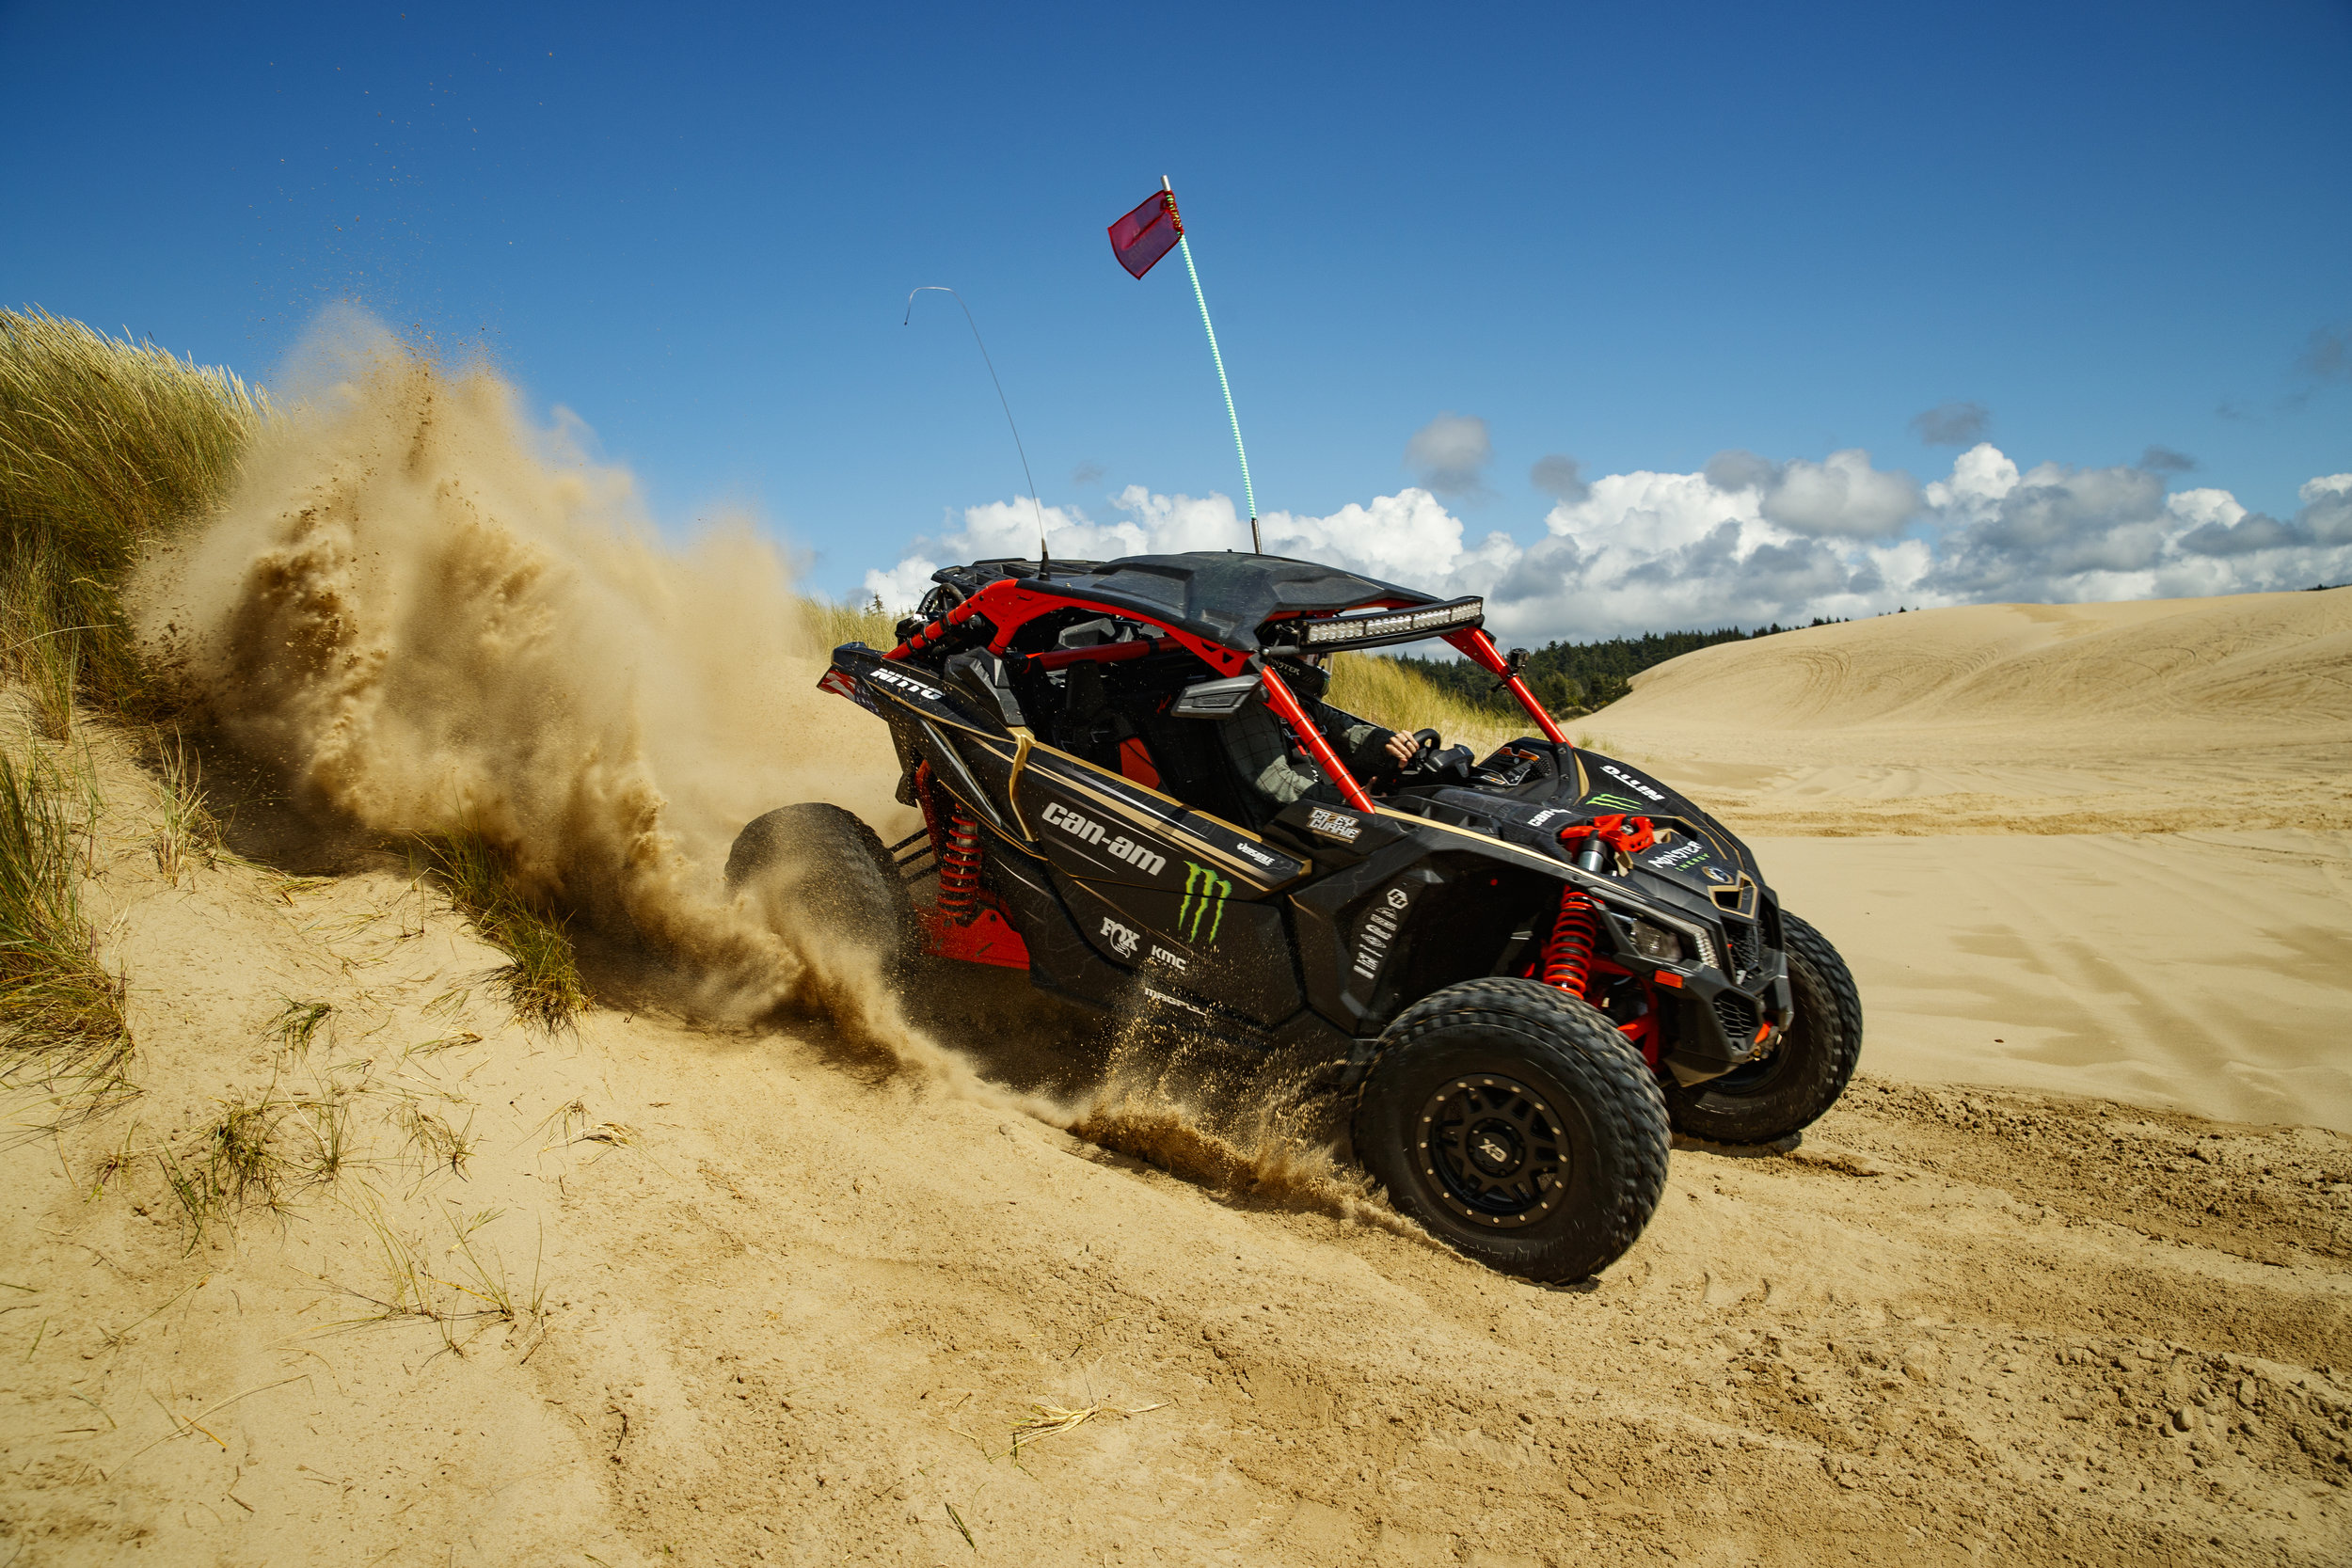 CaseyCurrie_UTVTakeover_CoosBay_Oregon_Can-Am_014.jpg